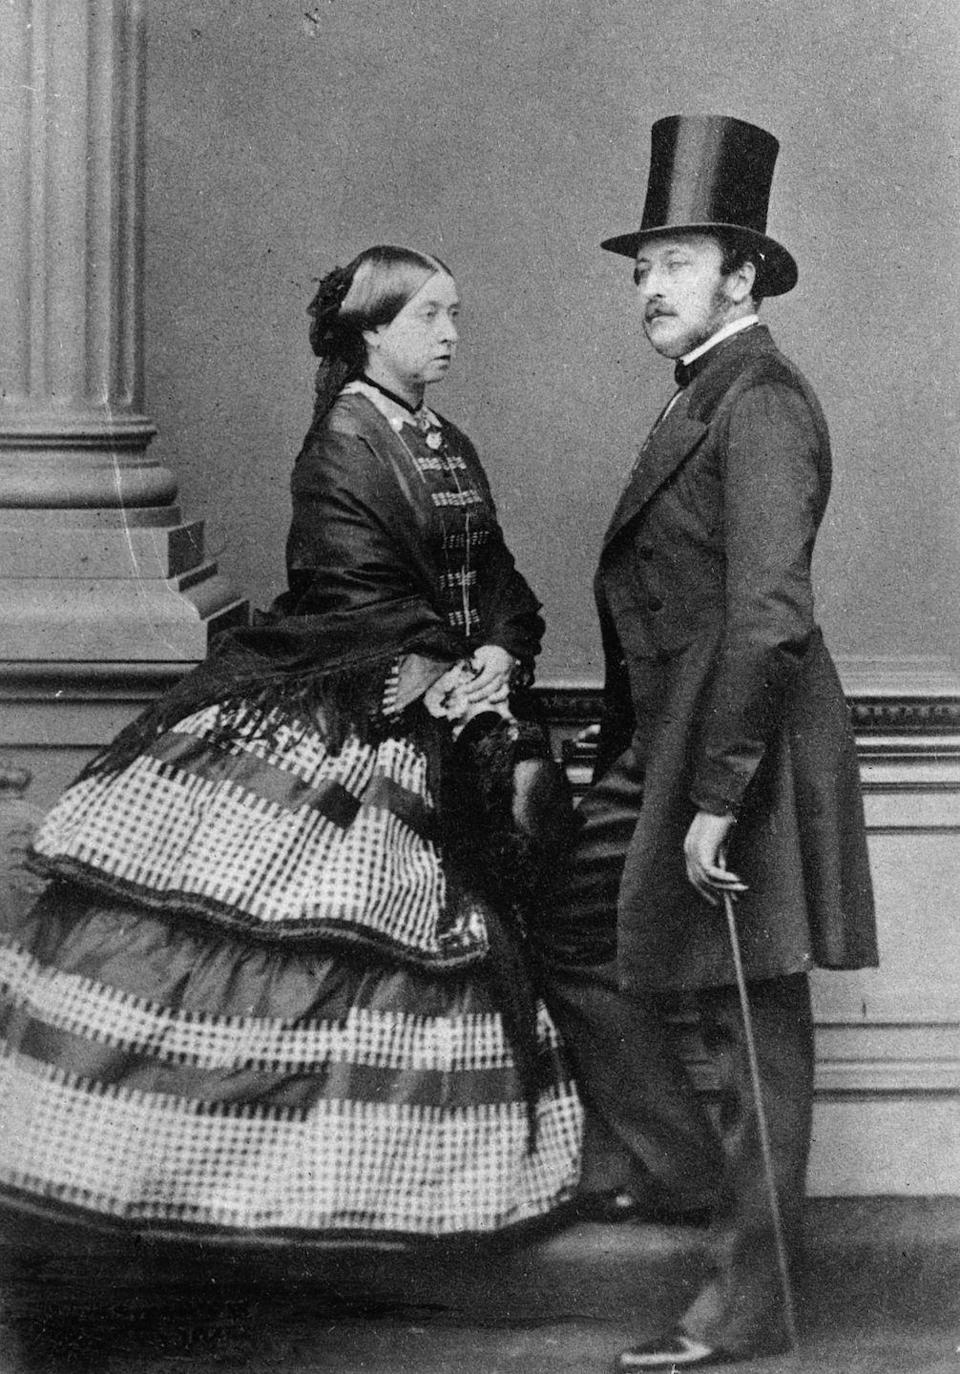 """<p>Queen Victoria, who reigned from 1837-1901, was Queen Elizabeth II's great-great-grandmother. She was the first British sovereign to <a href=""""https://www.nytimes.com/2014/04/19/arts/design/love-those-royal-family-photos-it-all-started-with-victoria.html#"""" rel=""""nofollow noopener"""" target=""""_blank"""" data-ylk=""""slk:embrace photography"""" class=""""link rapid-noclick-resp"""">embrace photography</a> as a means of making the royal brand accessible to the public, since the medium was introduced shortly after she ascended the throne. She and her husband, Prince Albert (pictured), became champions of the new art form.</p>"""